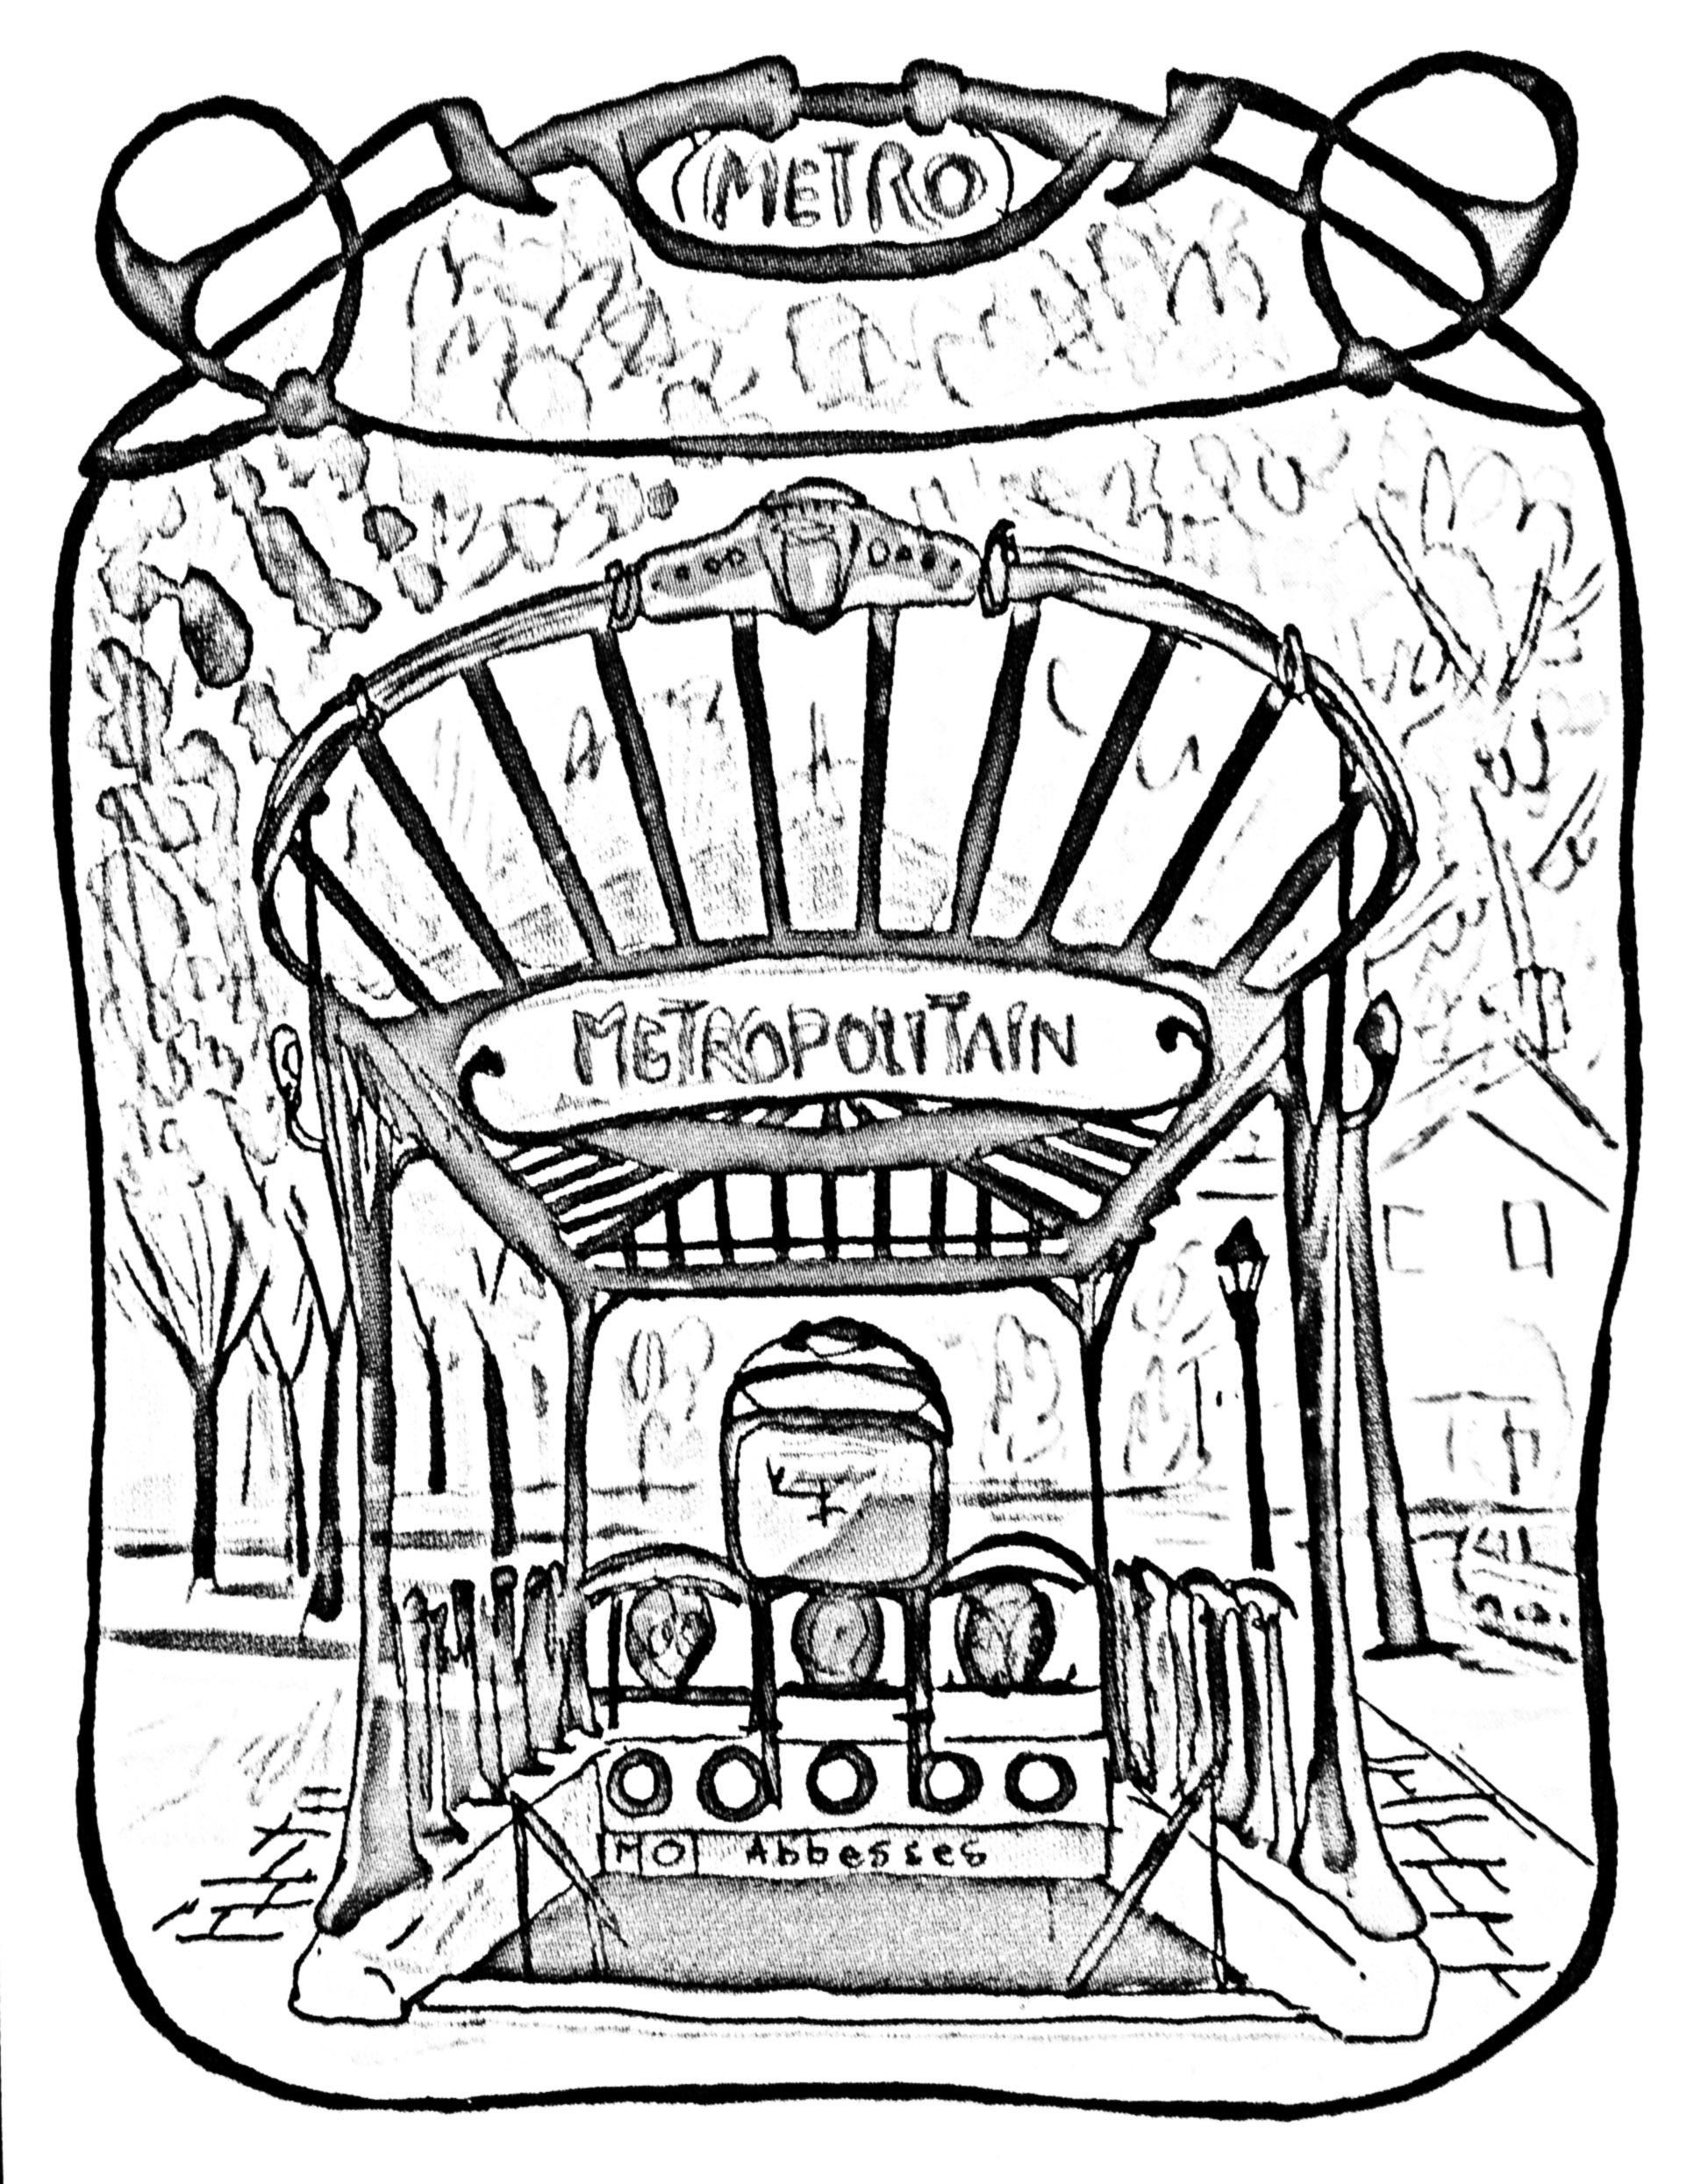 Drawing to color of an entrance gate to Paris Subway ('Metropolitain')